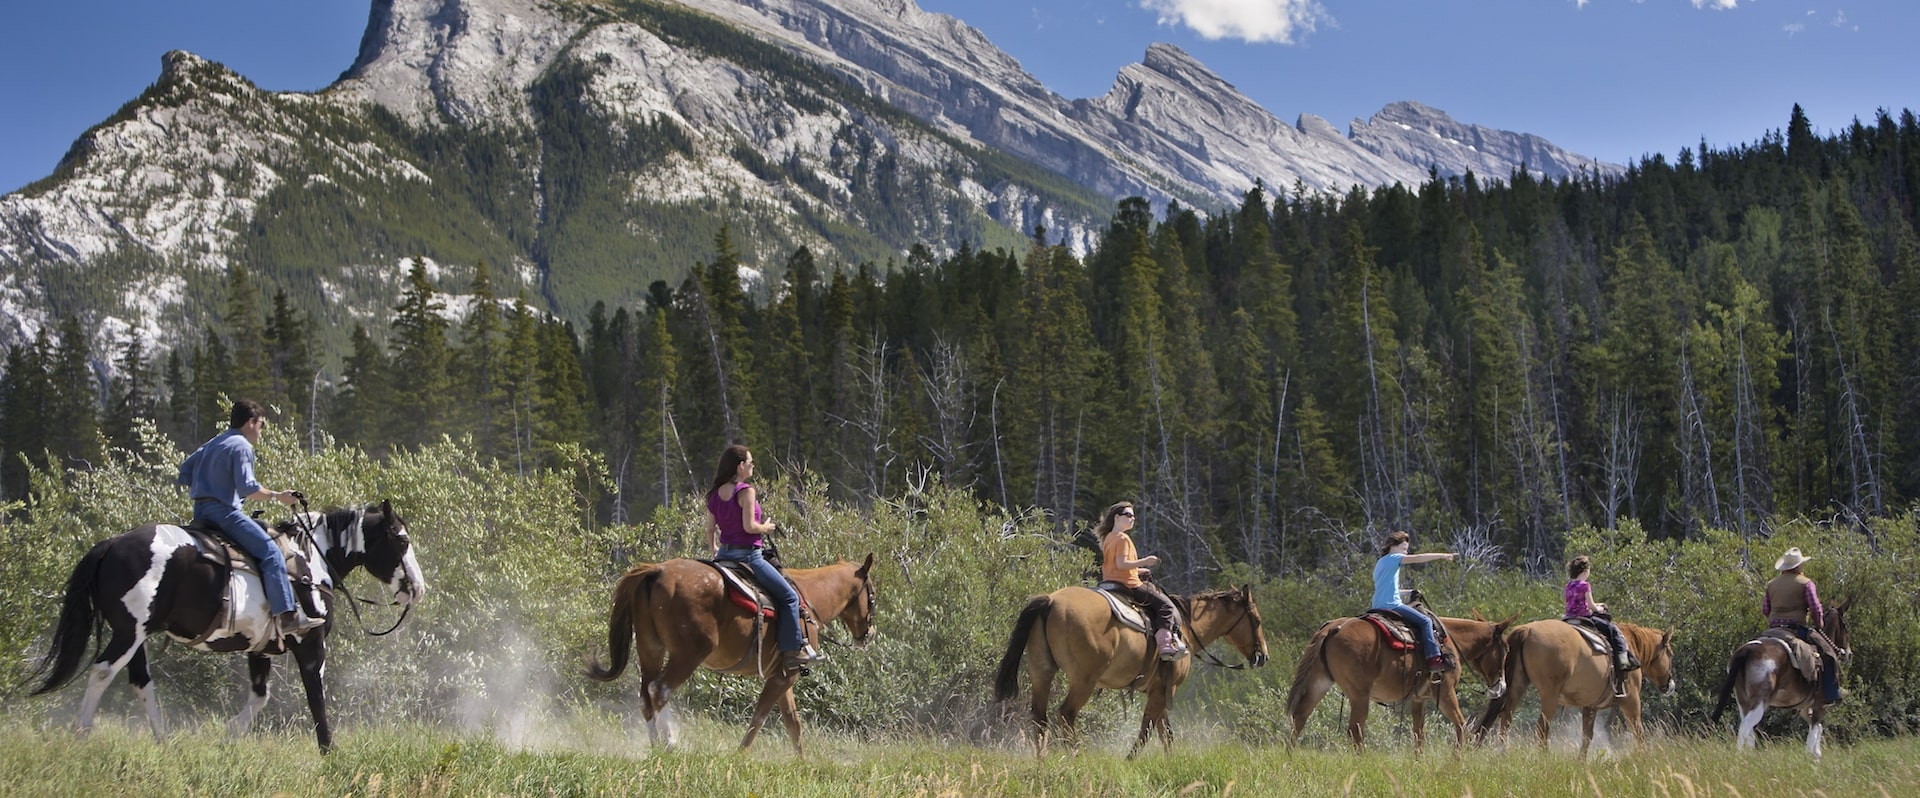 Enjoy Banff's beauty on the back of a horse